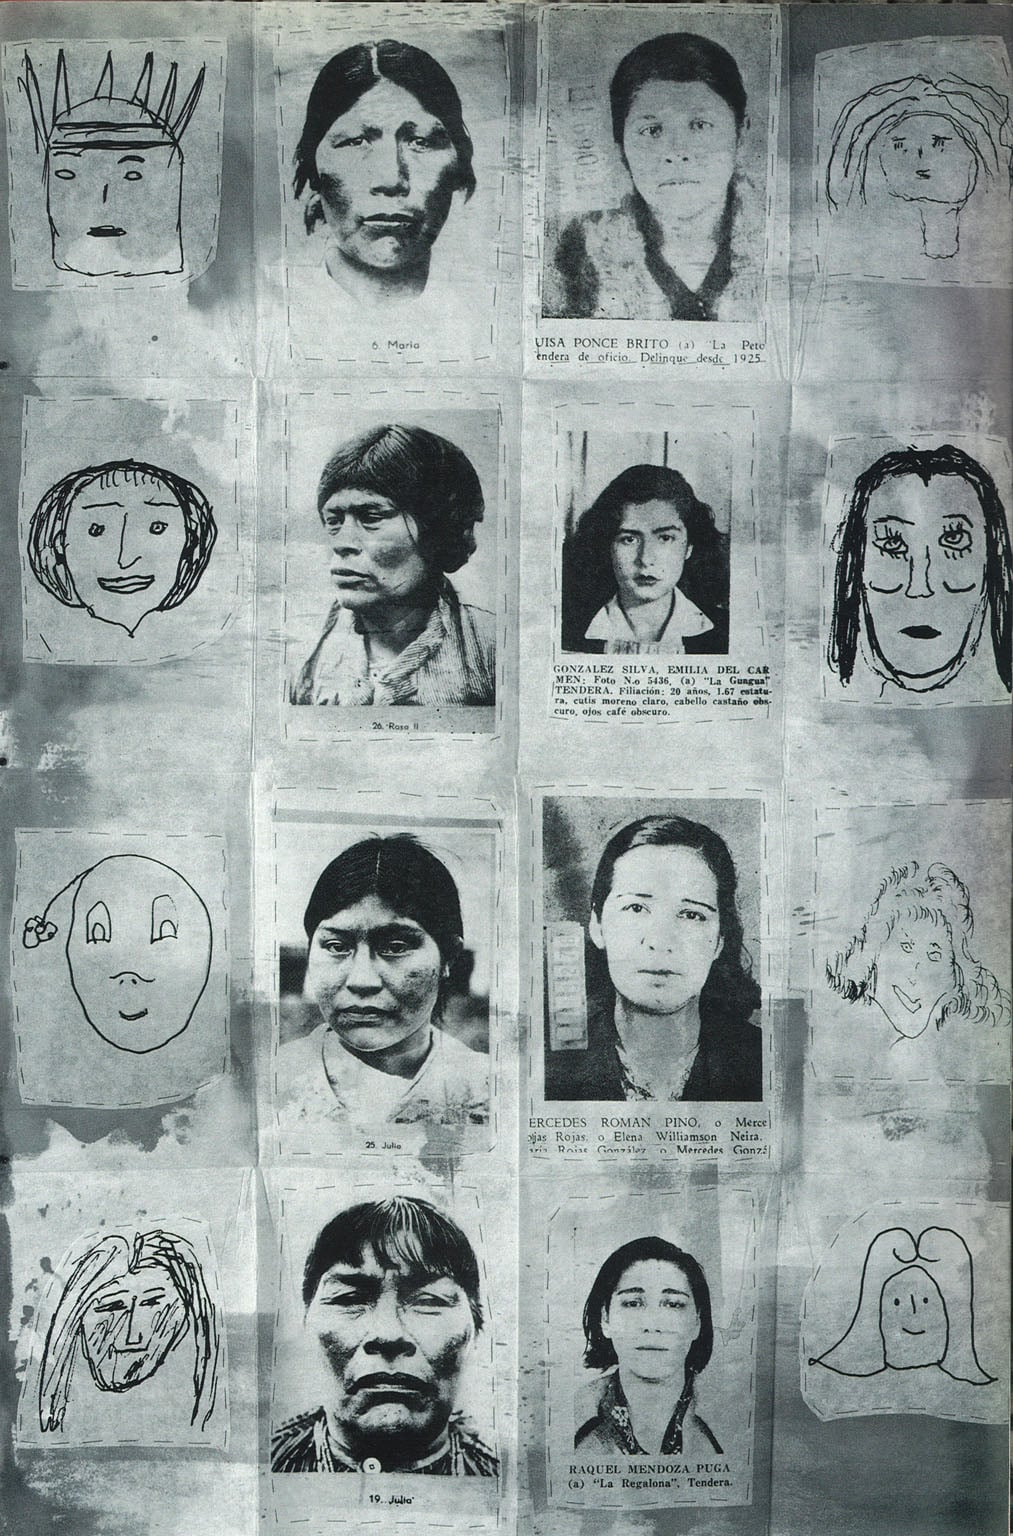 Three Airmail paintings: 1) Nine Survivors (Three Stains); 2) The 13th History of the Human Face (The Portal of H.); 3) Absent Feet